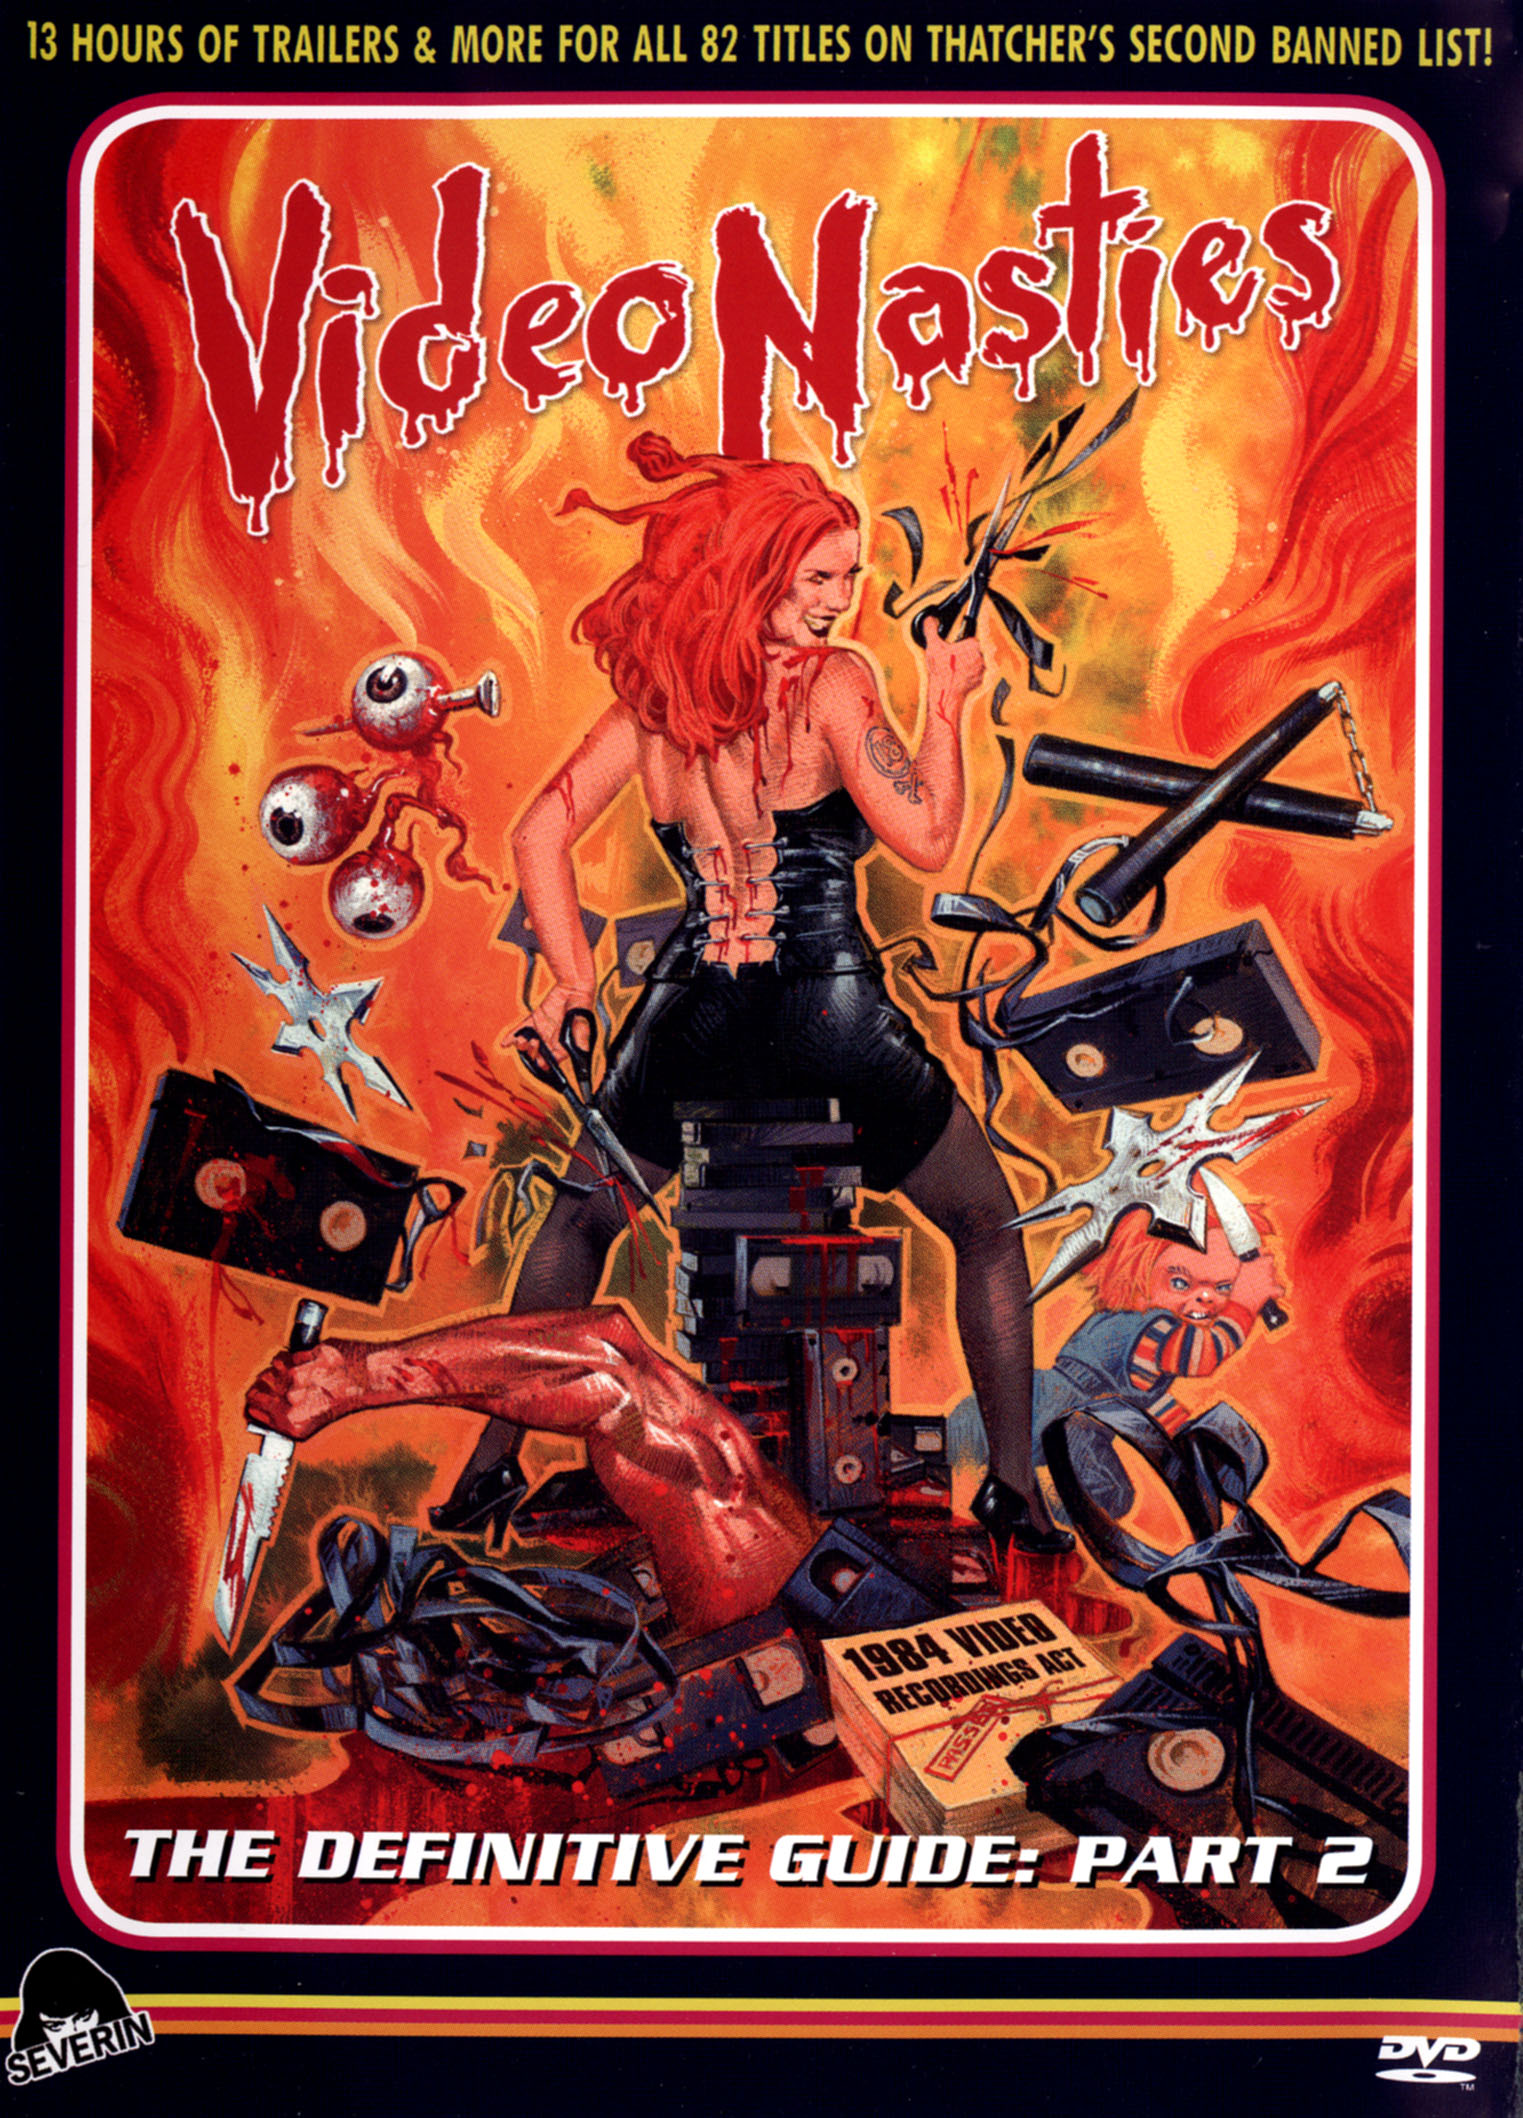 Video Nasties: The Defnitive Guide - Part 2